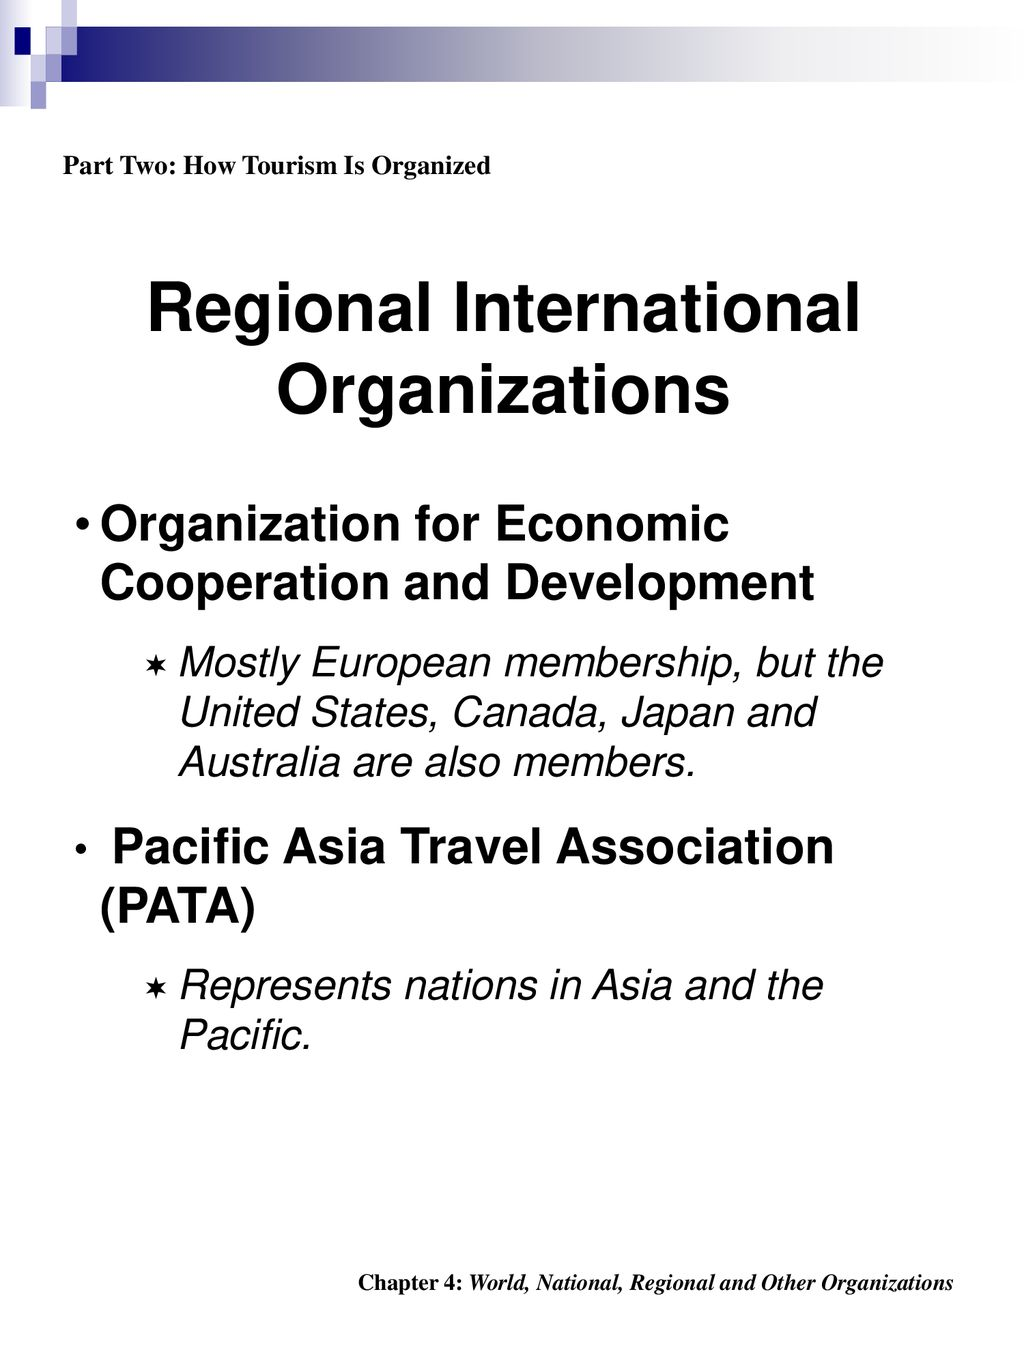 Part One: Tourism Overview - ppt download